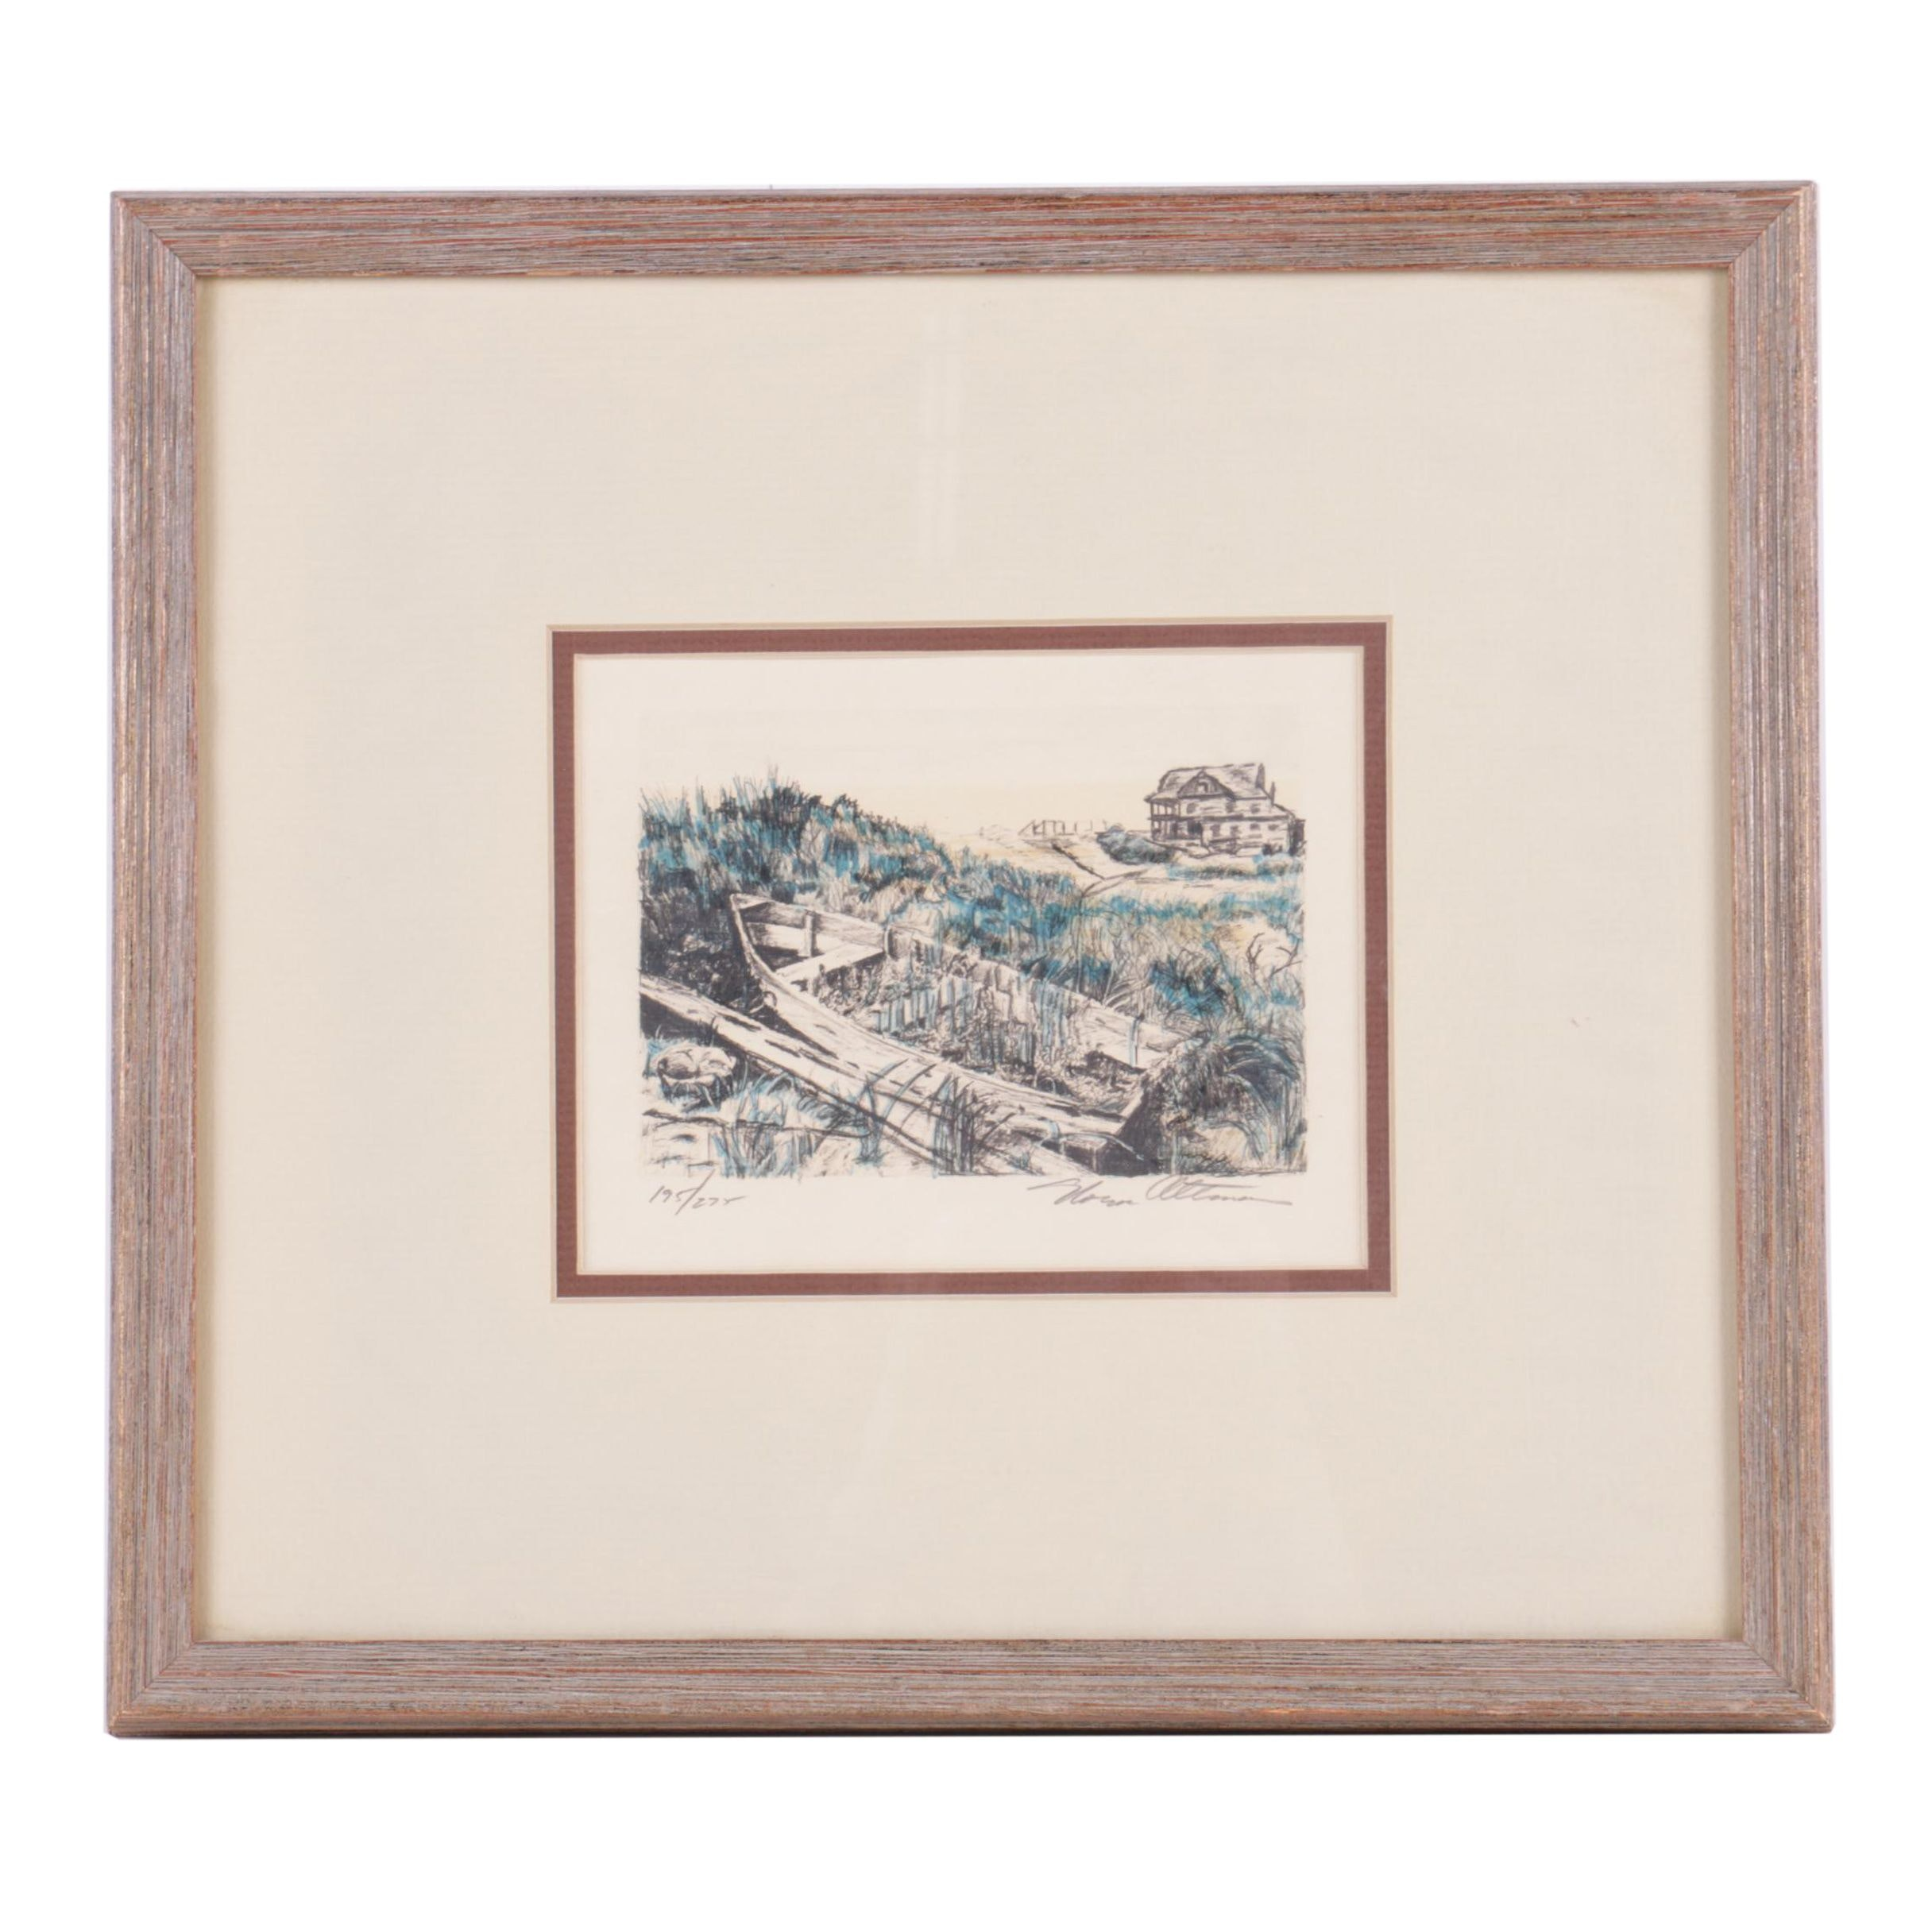 Altman Limited Edition Lithograph on Paper